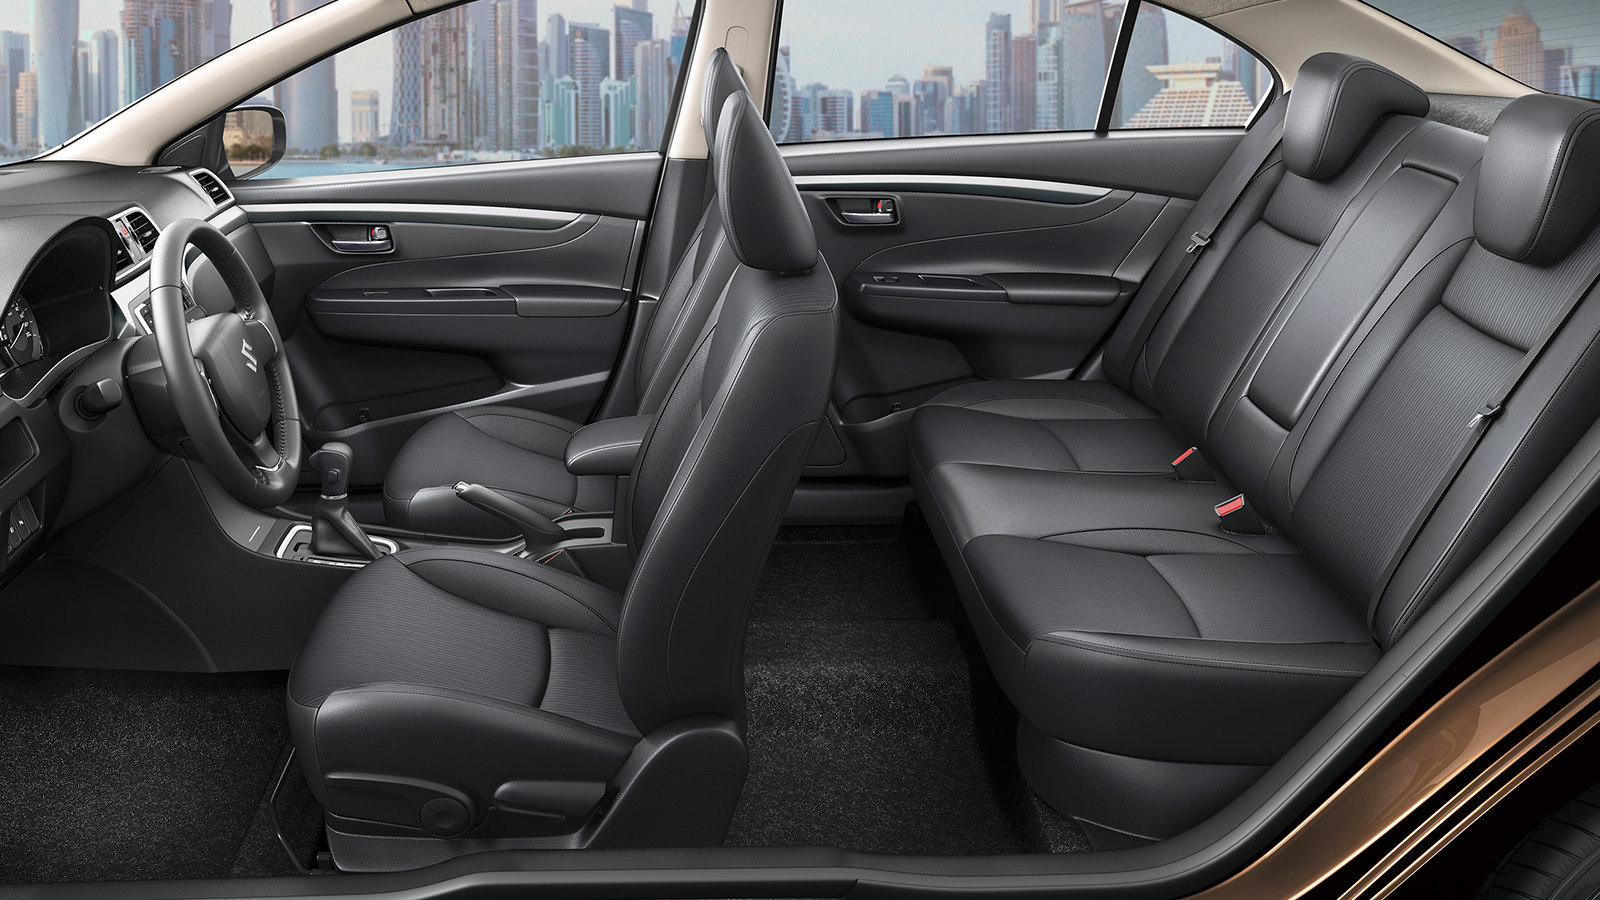 suzuki ciaz 2018 standard in uae new car prices specs reviews photos yallamotor. Black Bedroom Furniture Sets. Home Design Ideas